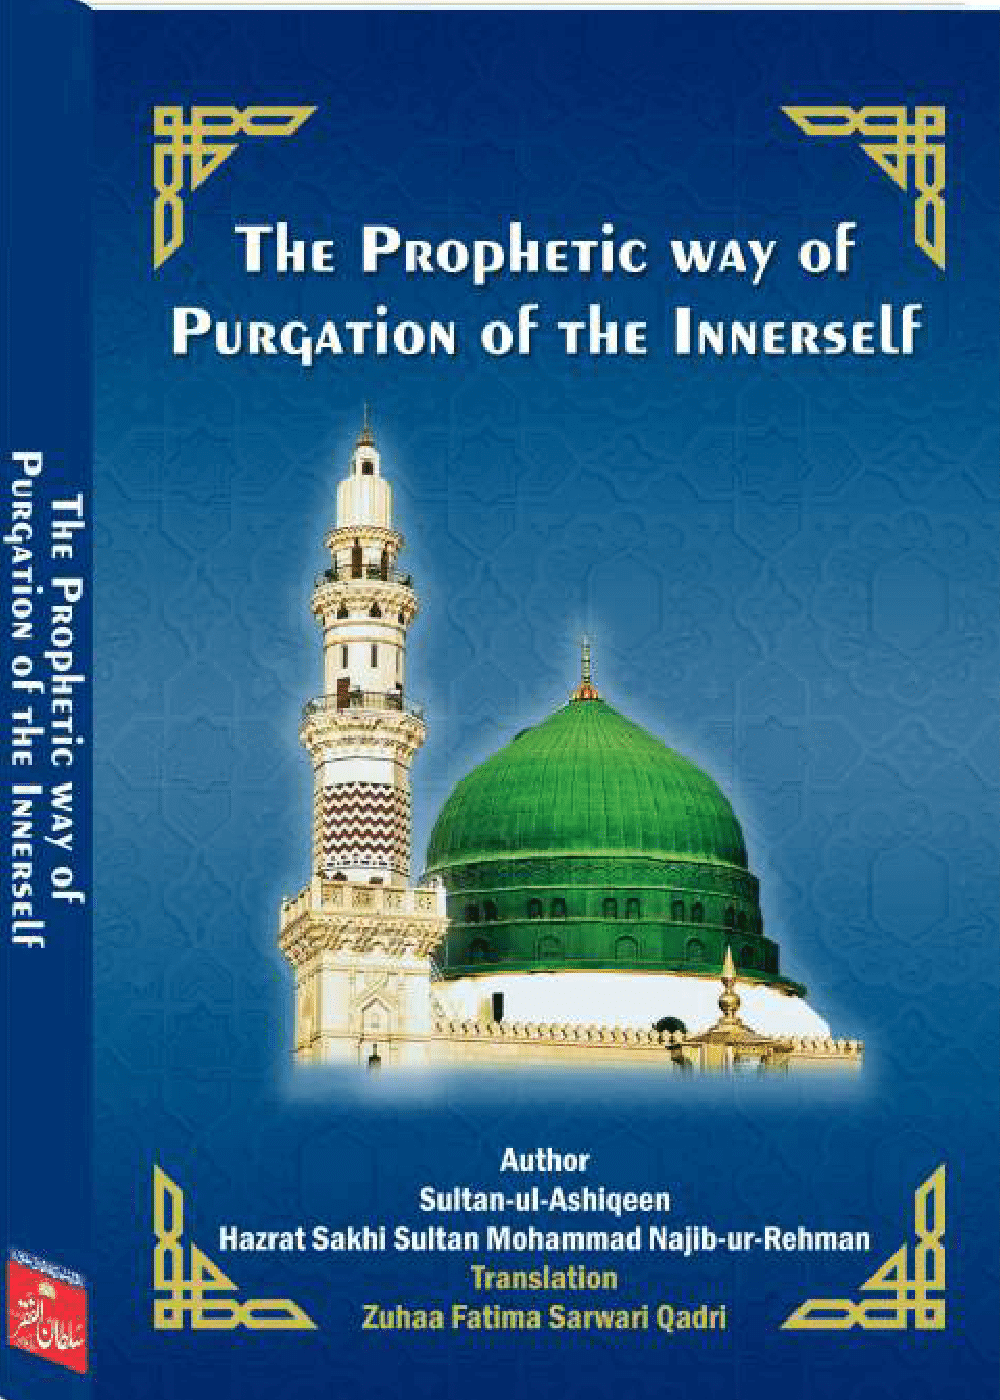 The Prophetic Way of Purgation of Innerself